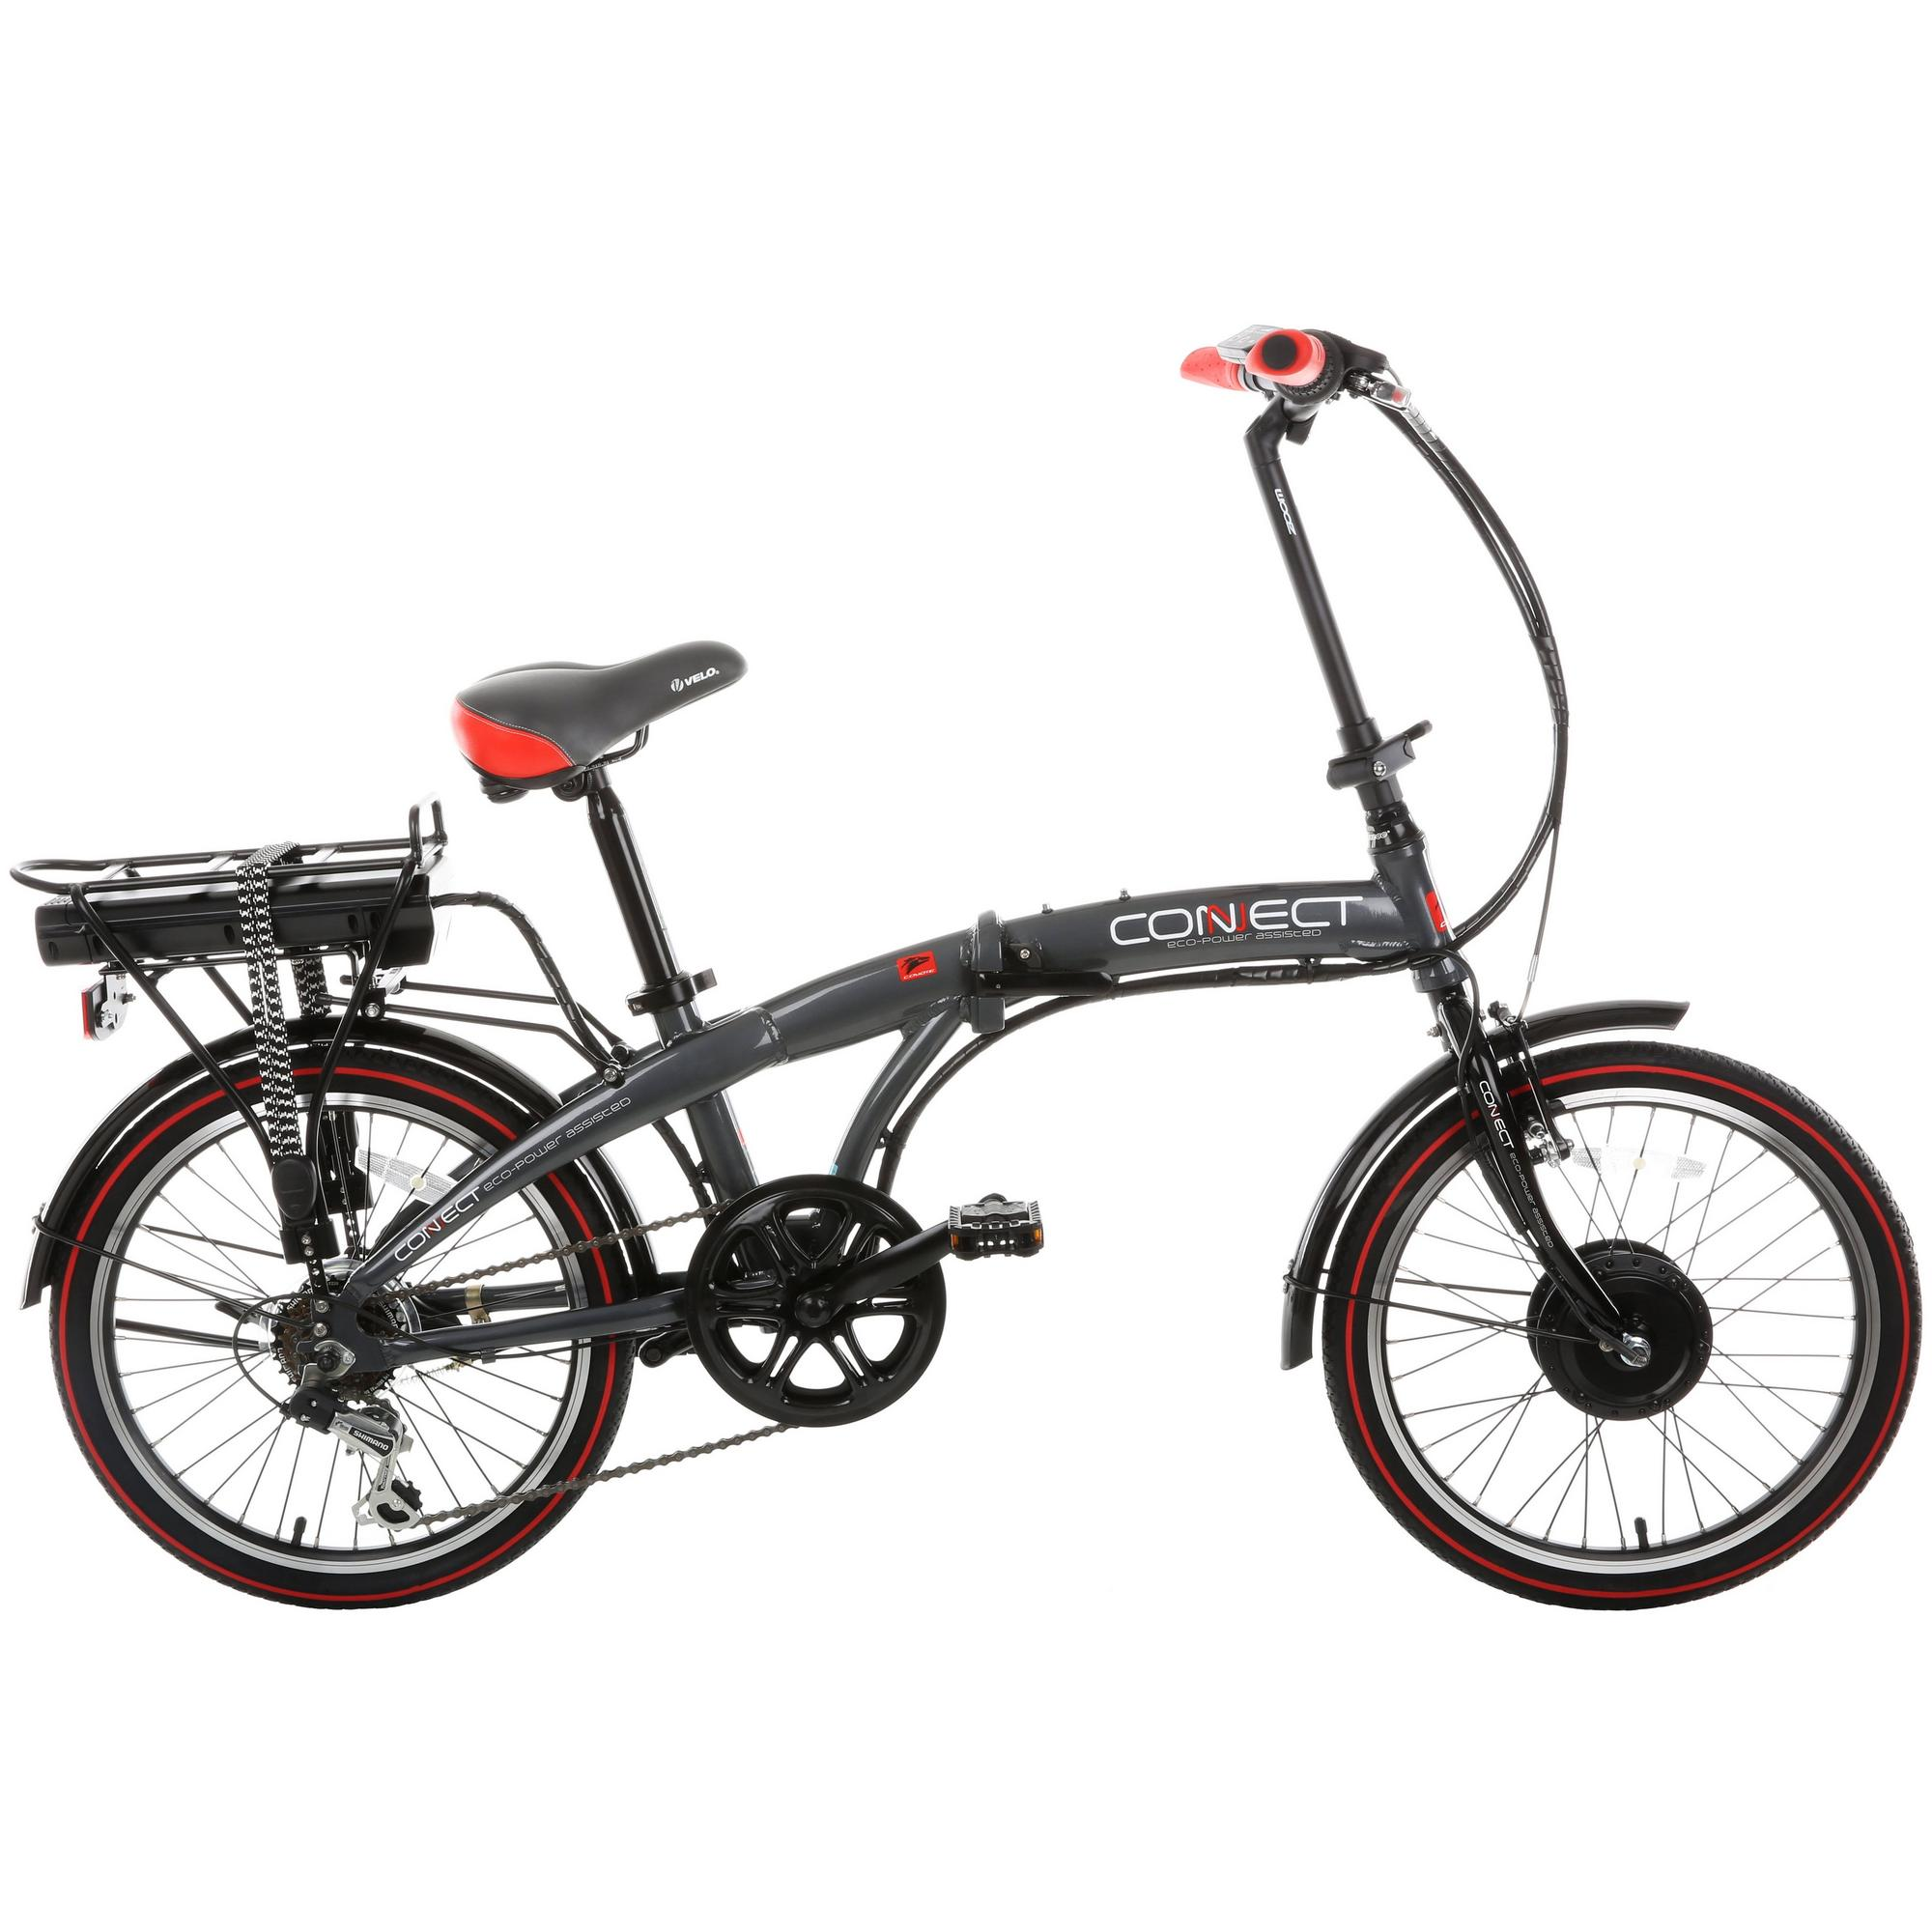 Coyote Connect Li Ion Baterry Alloy Folding Frame Electric